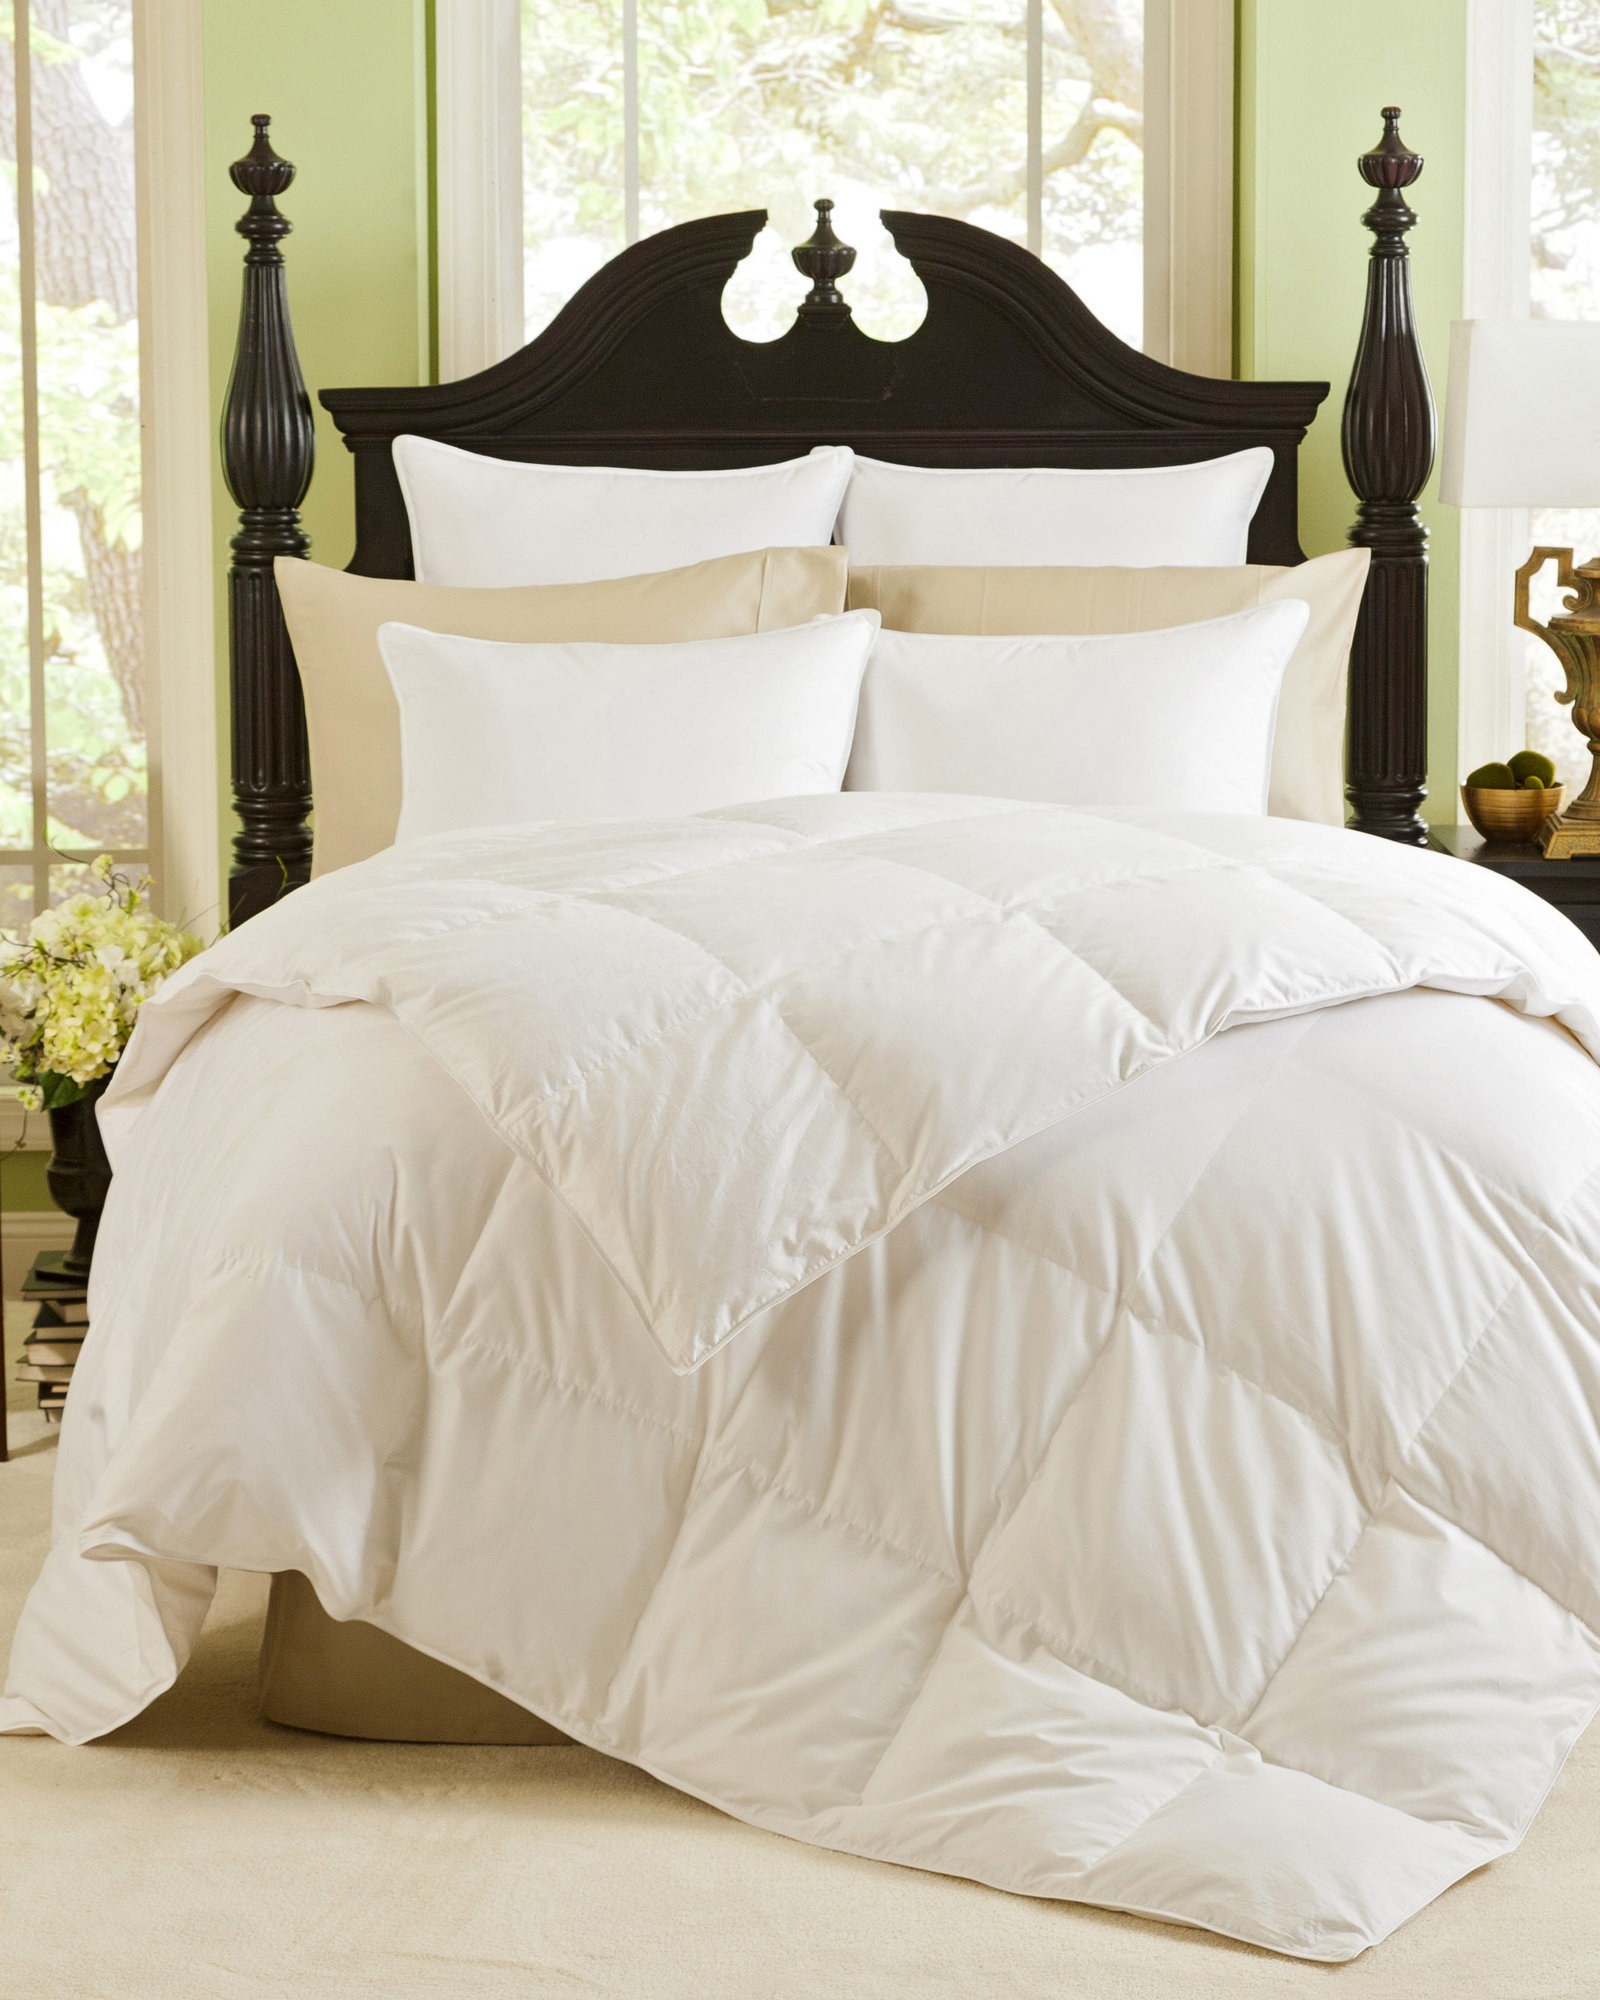 comforter sallykaplan bedding up classic for college are prices places your modest buy buzz here items the best sub century comforters now to so boasts on stock